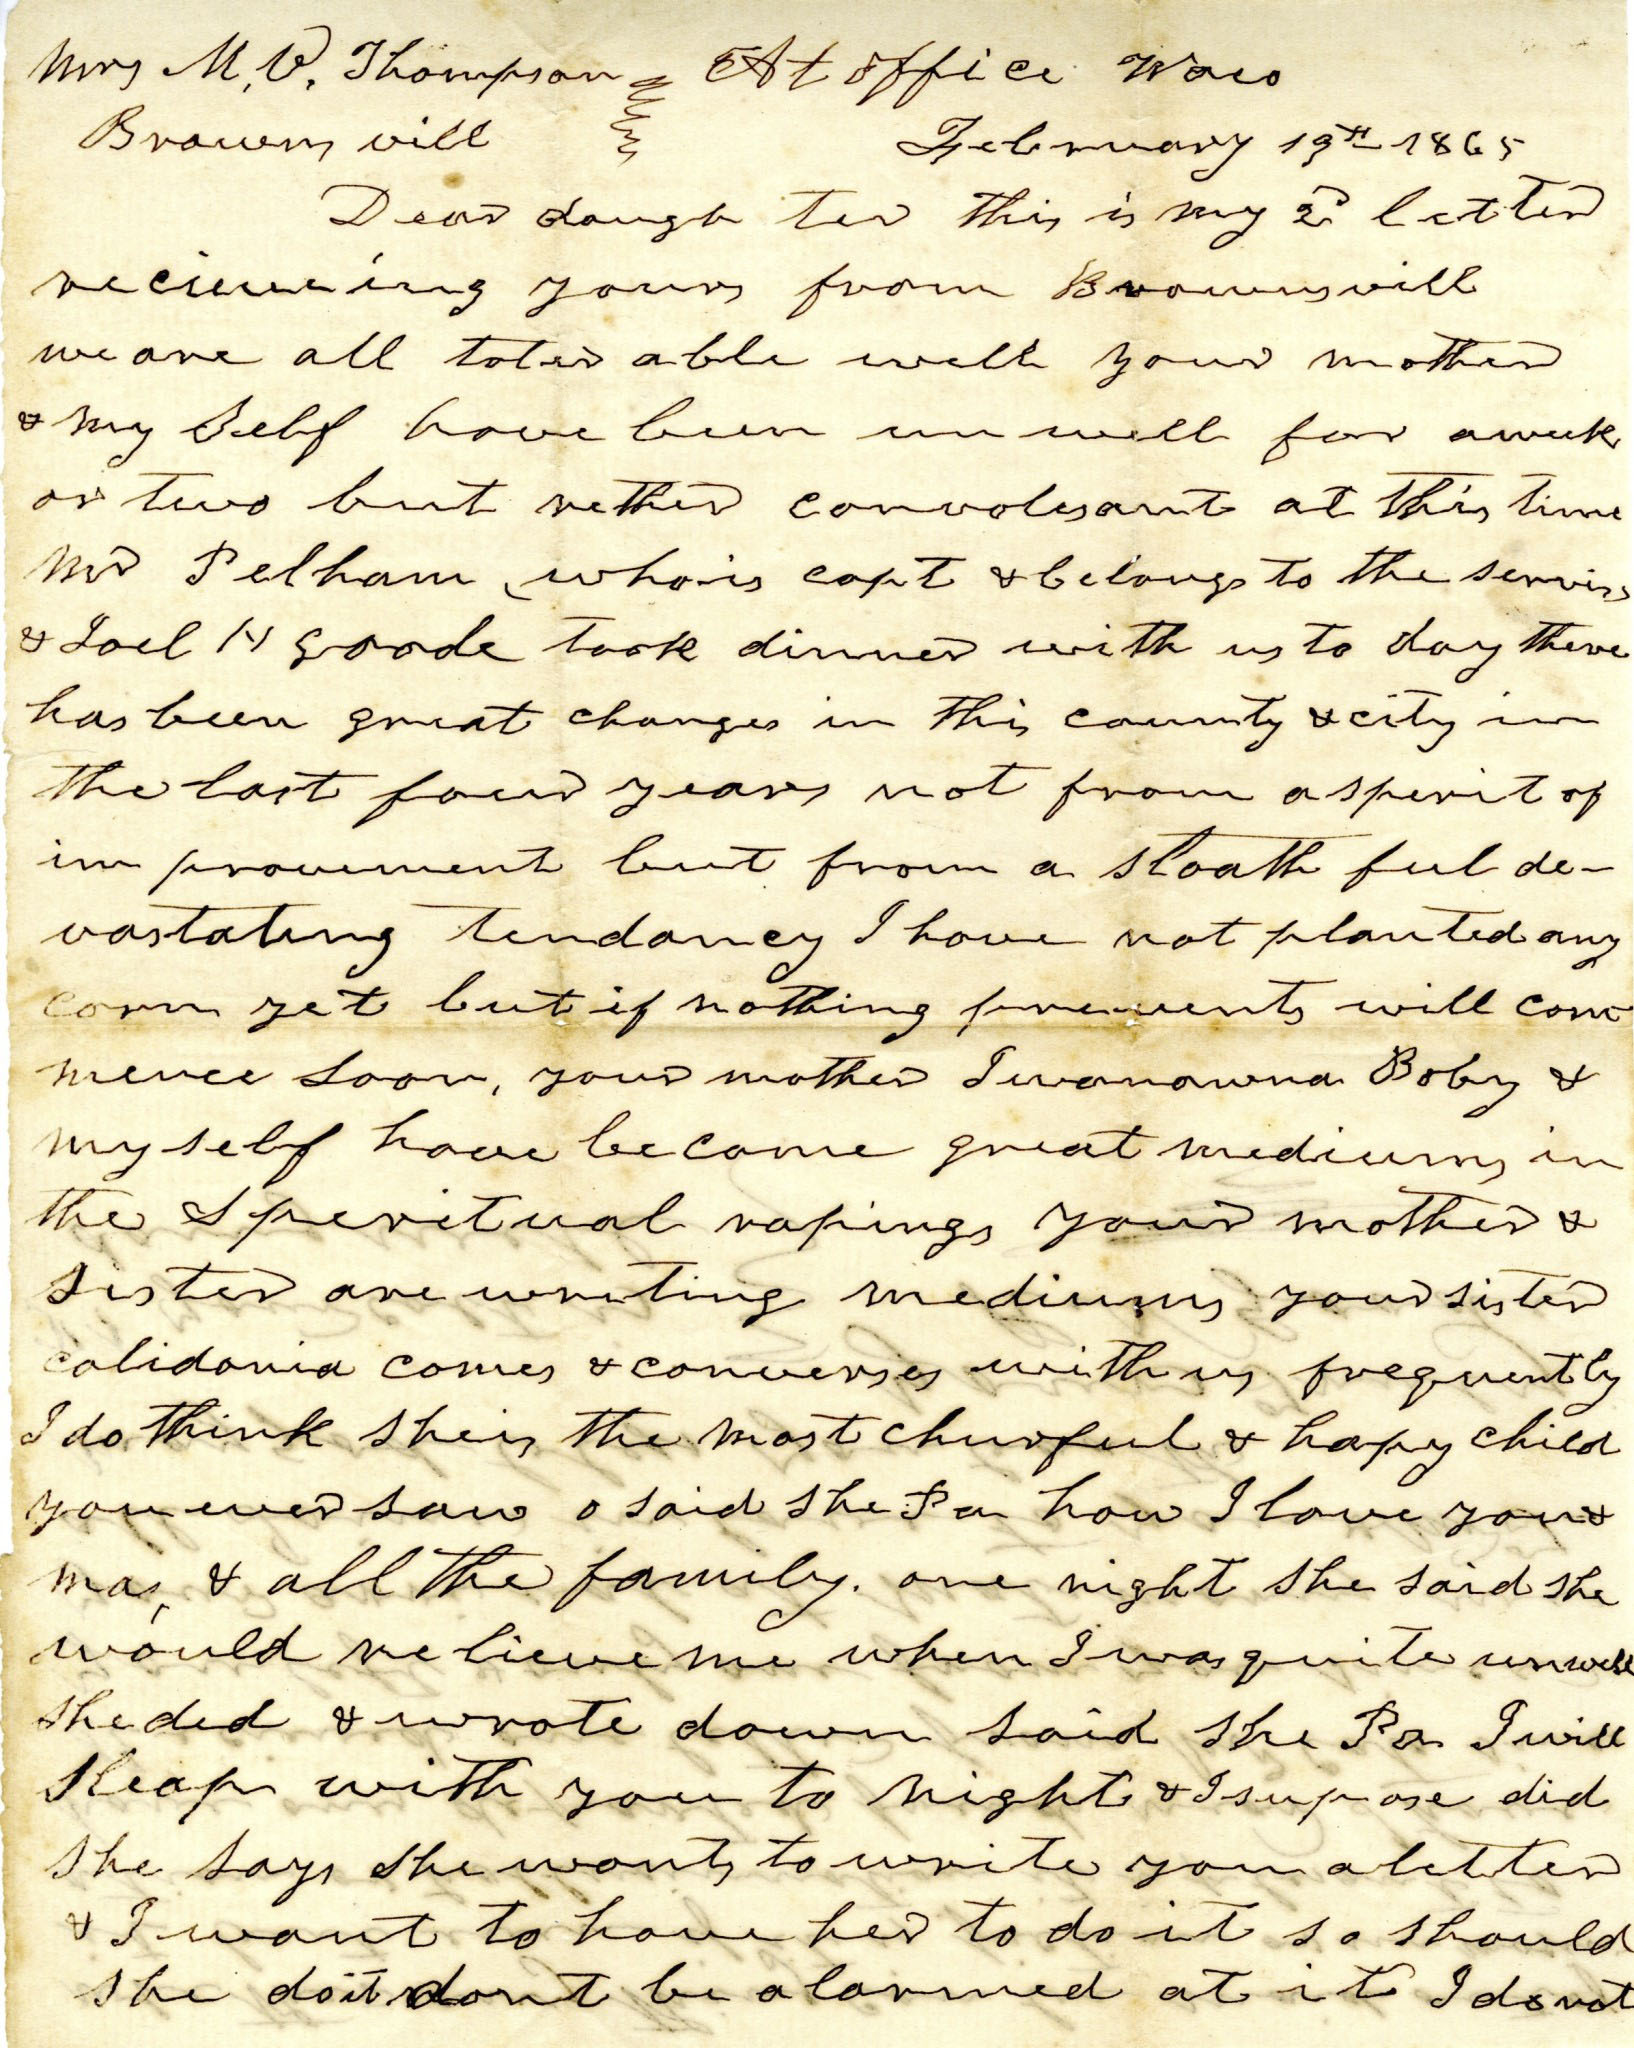 Letter from Richard N. Goode to Mary Virginia Thompson, Feb. 19, 1865